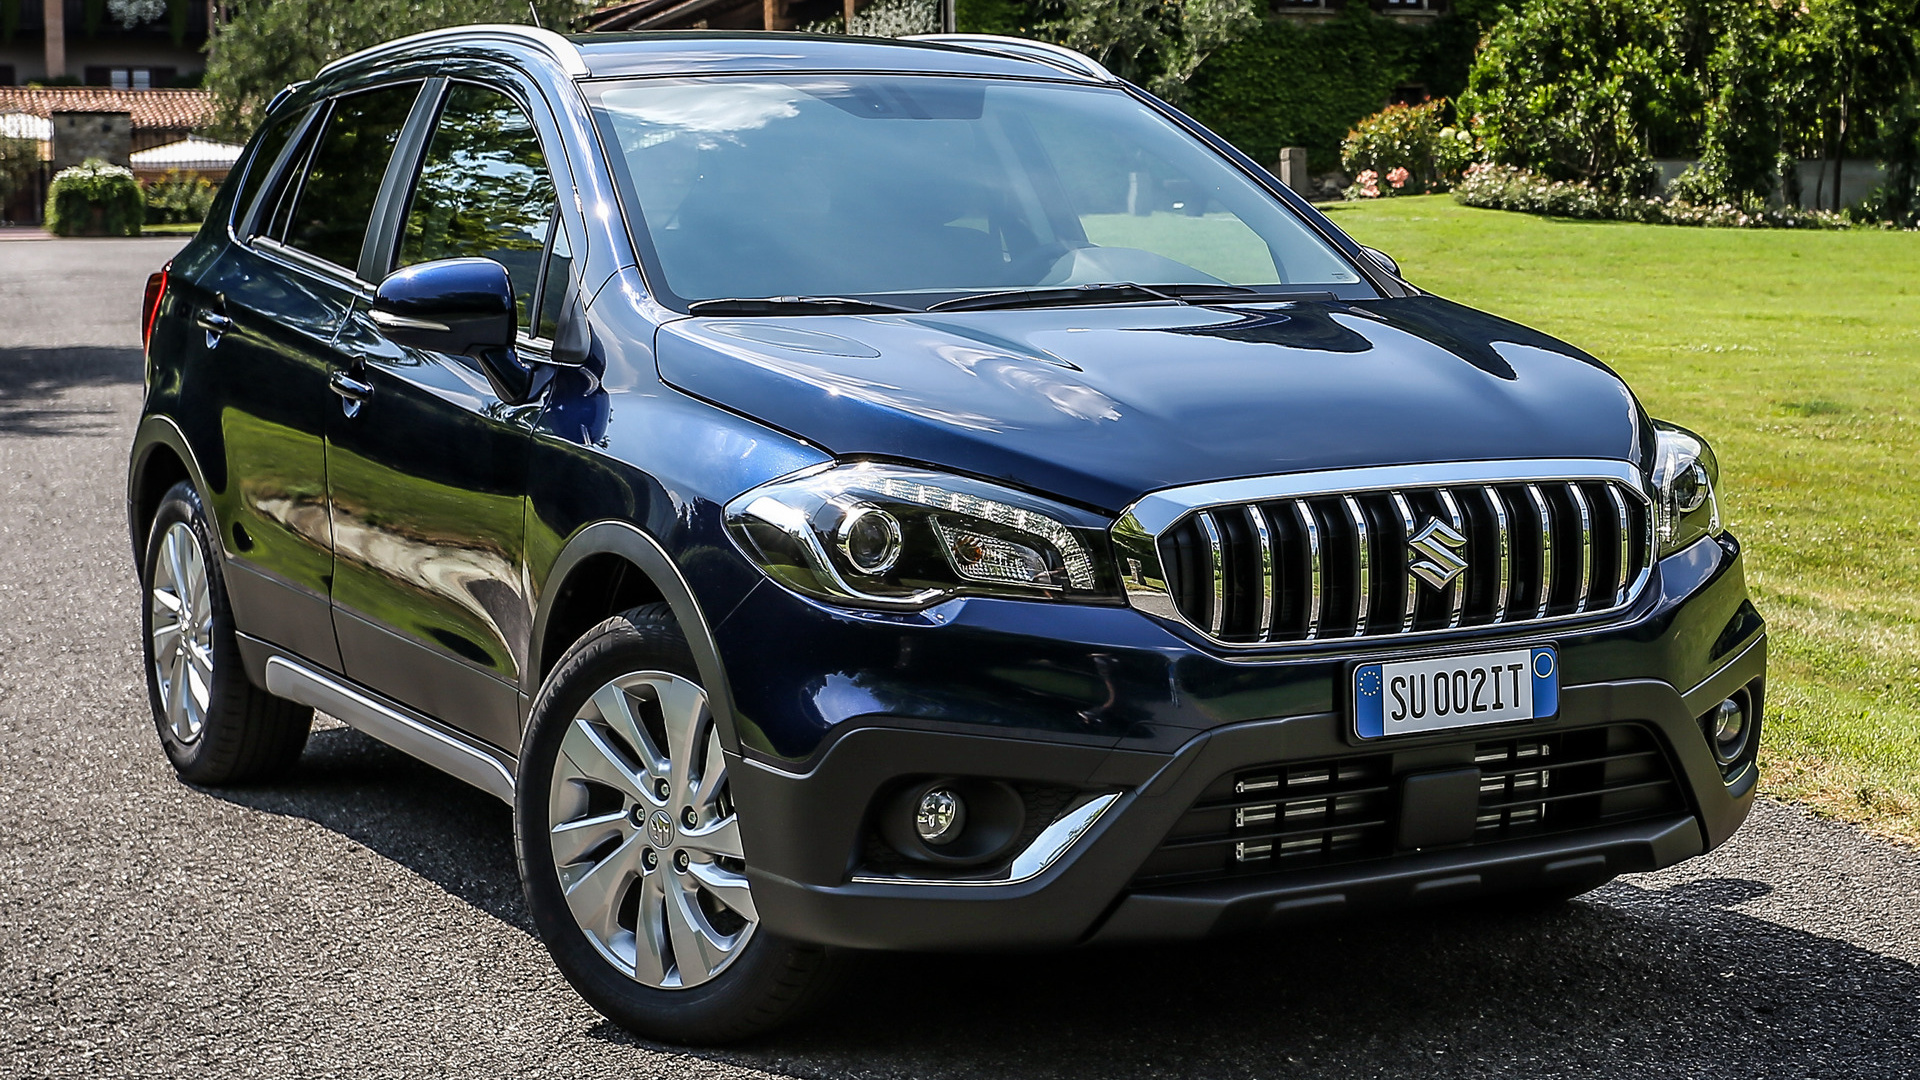 Suzuki SX4 S-Cross (2016) Wallpapers and HD Images - Car Pixel